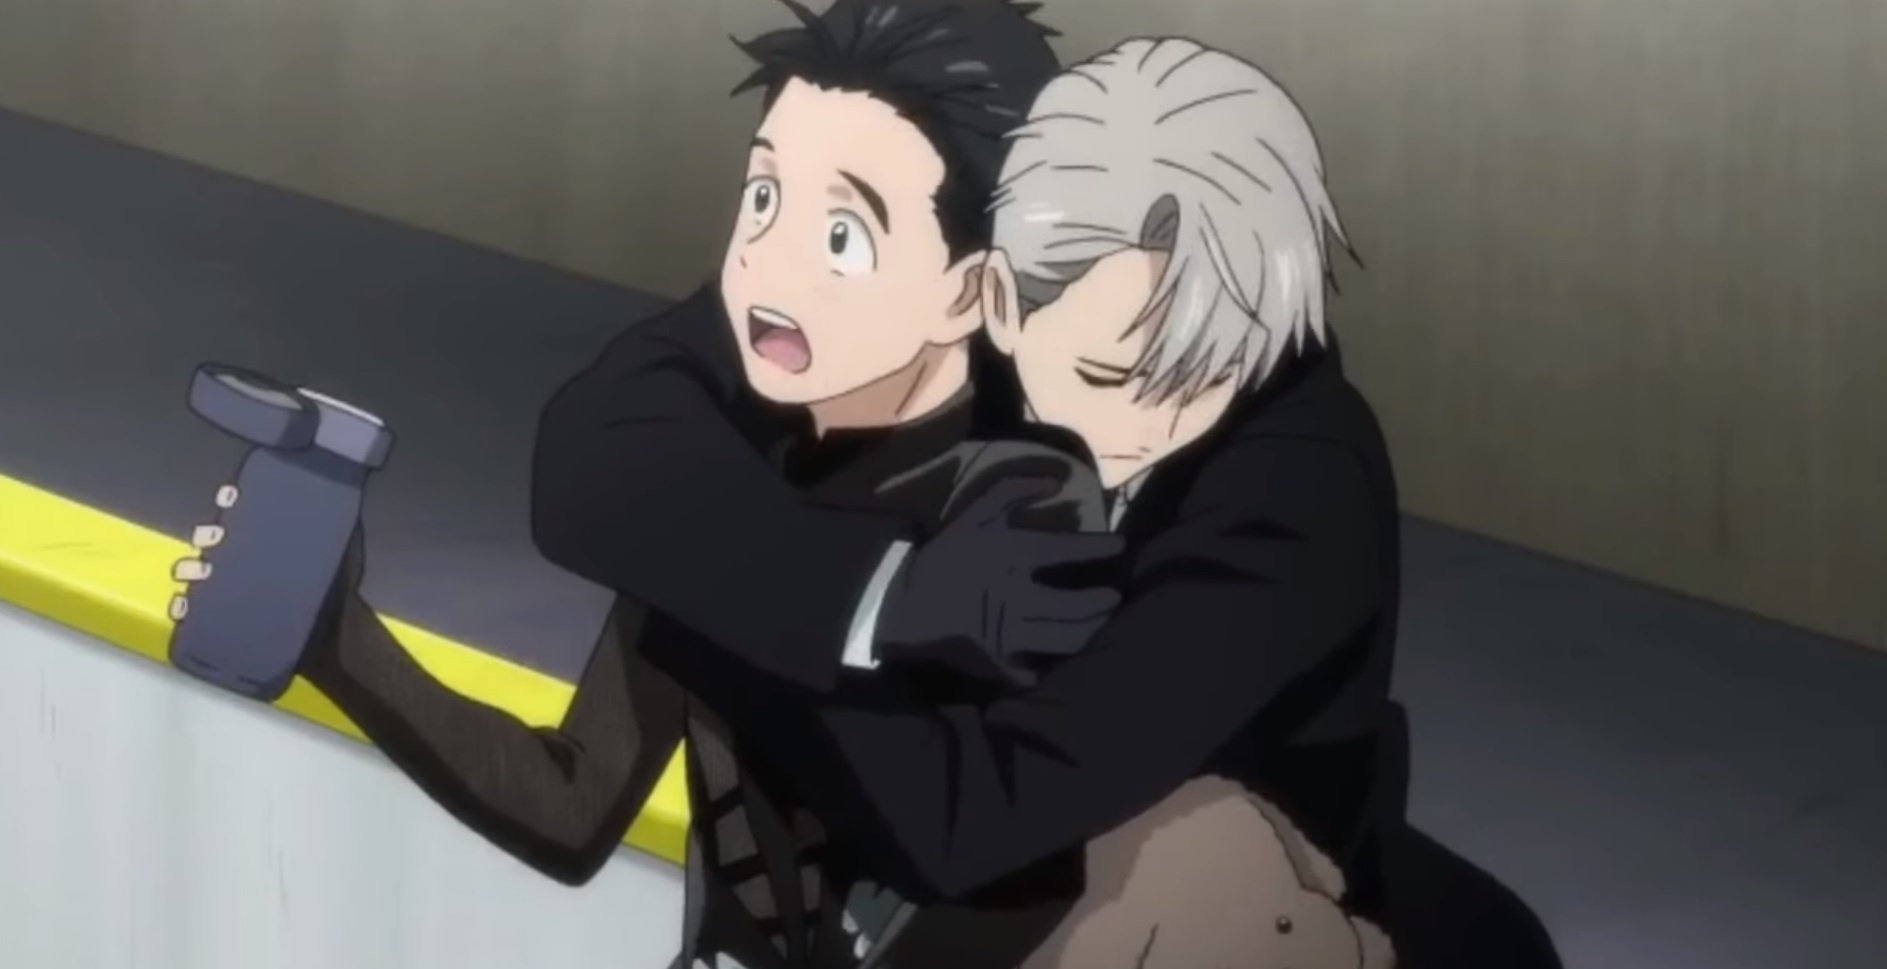 yuri on ice victor hug